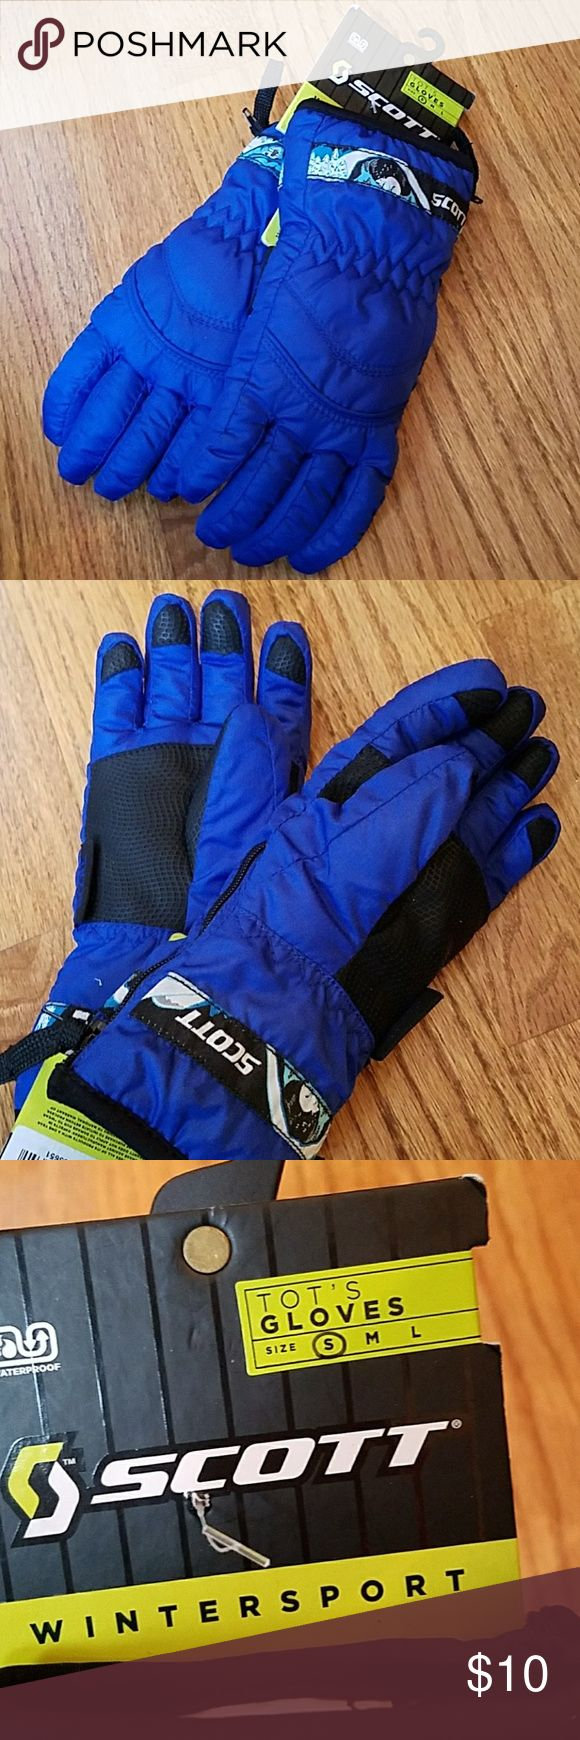 Toddler winter gloves Toddler winter snow gloves. Scott brand halfpint glove. Waterproof and super warm. Soft interior. Side zip for easy on and off. Brand new! Size tot small, one to two years old. scott Accessories Mittens